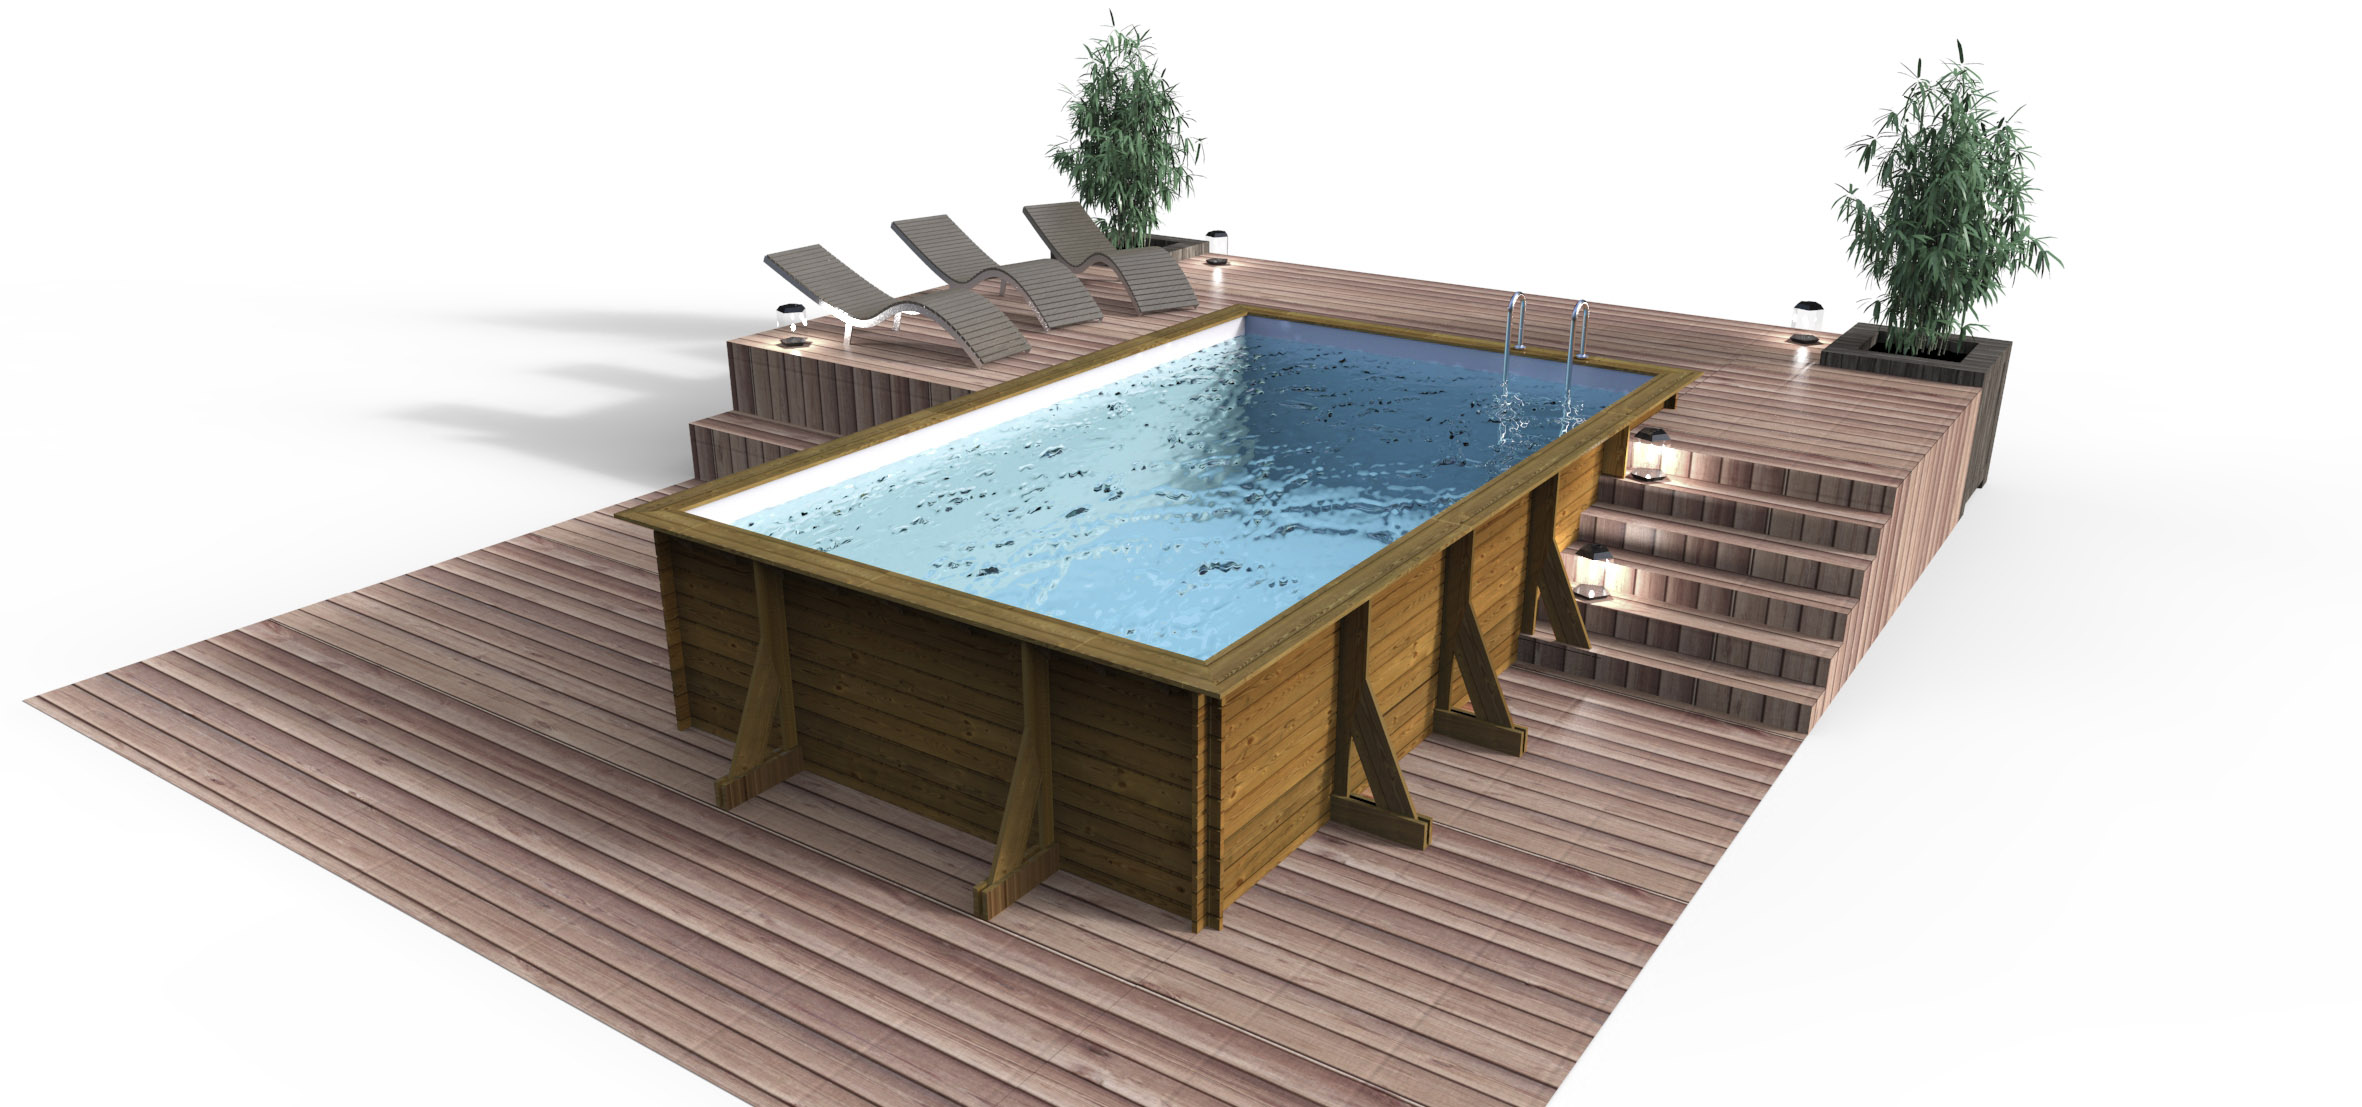 photo piscine hors sol avec terrasse bois good hors sol avec piscine echoppe bordeaux avec. Black Bedroom Furniture Sets. Home Design Ideas